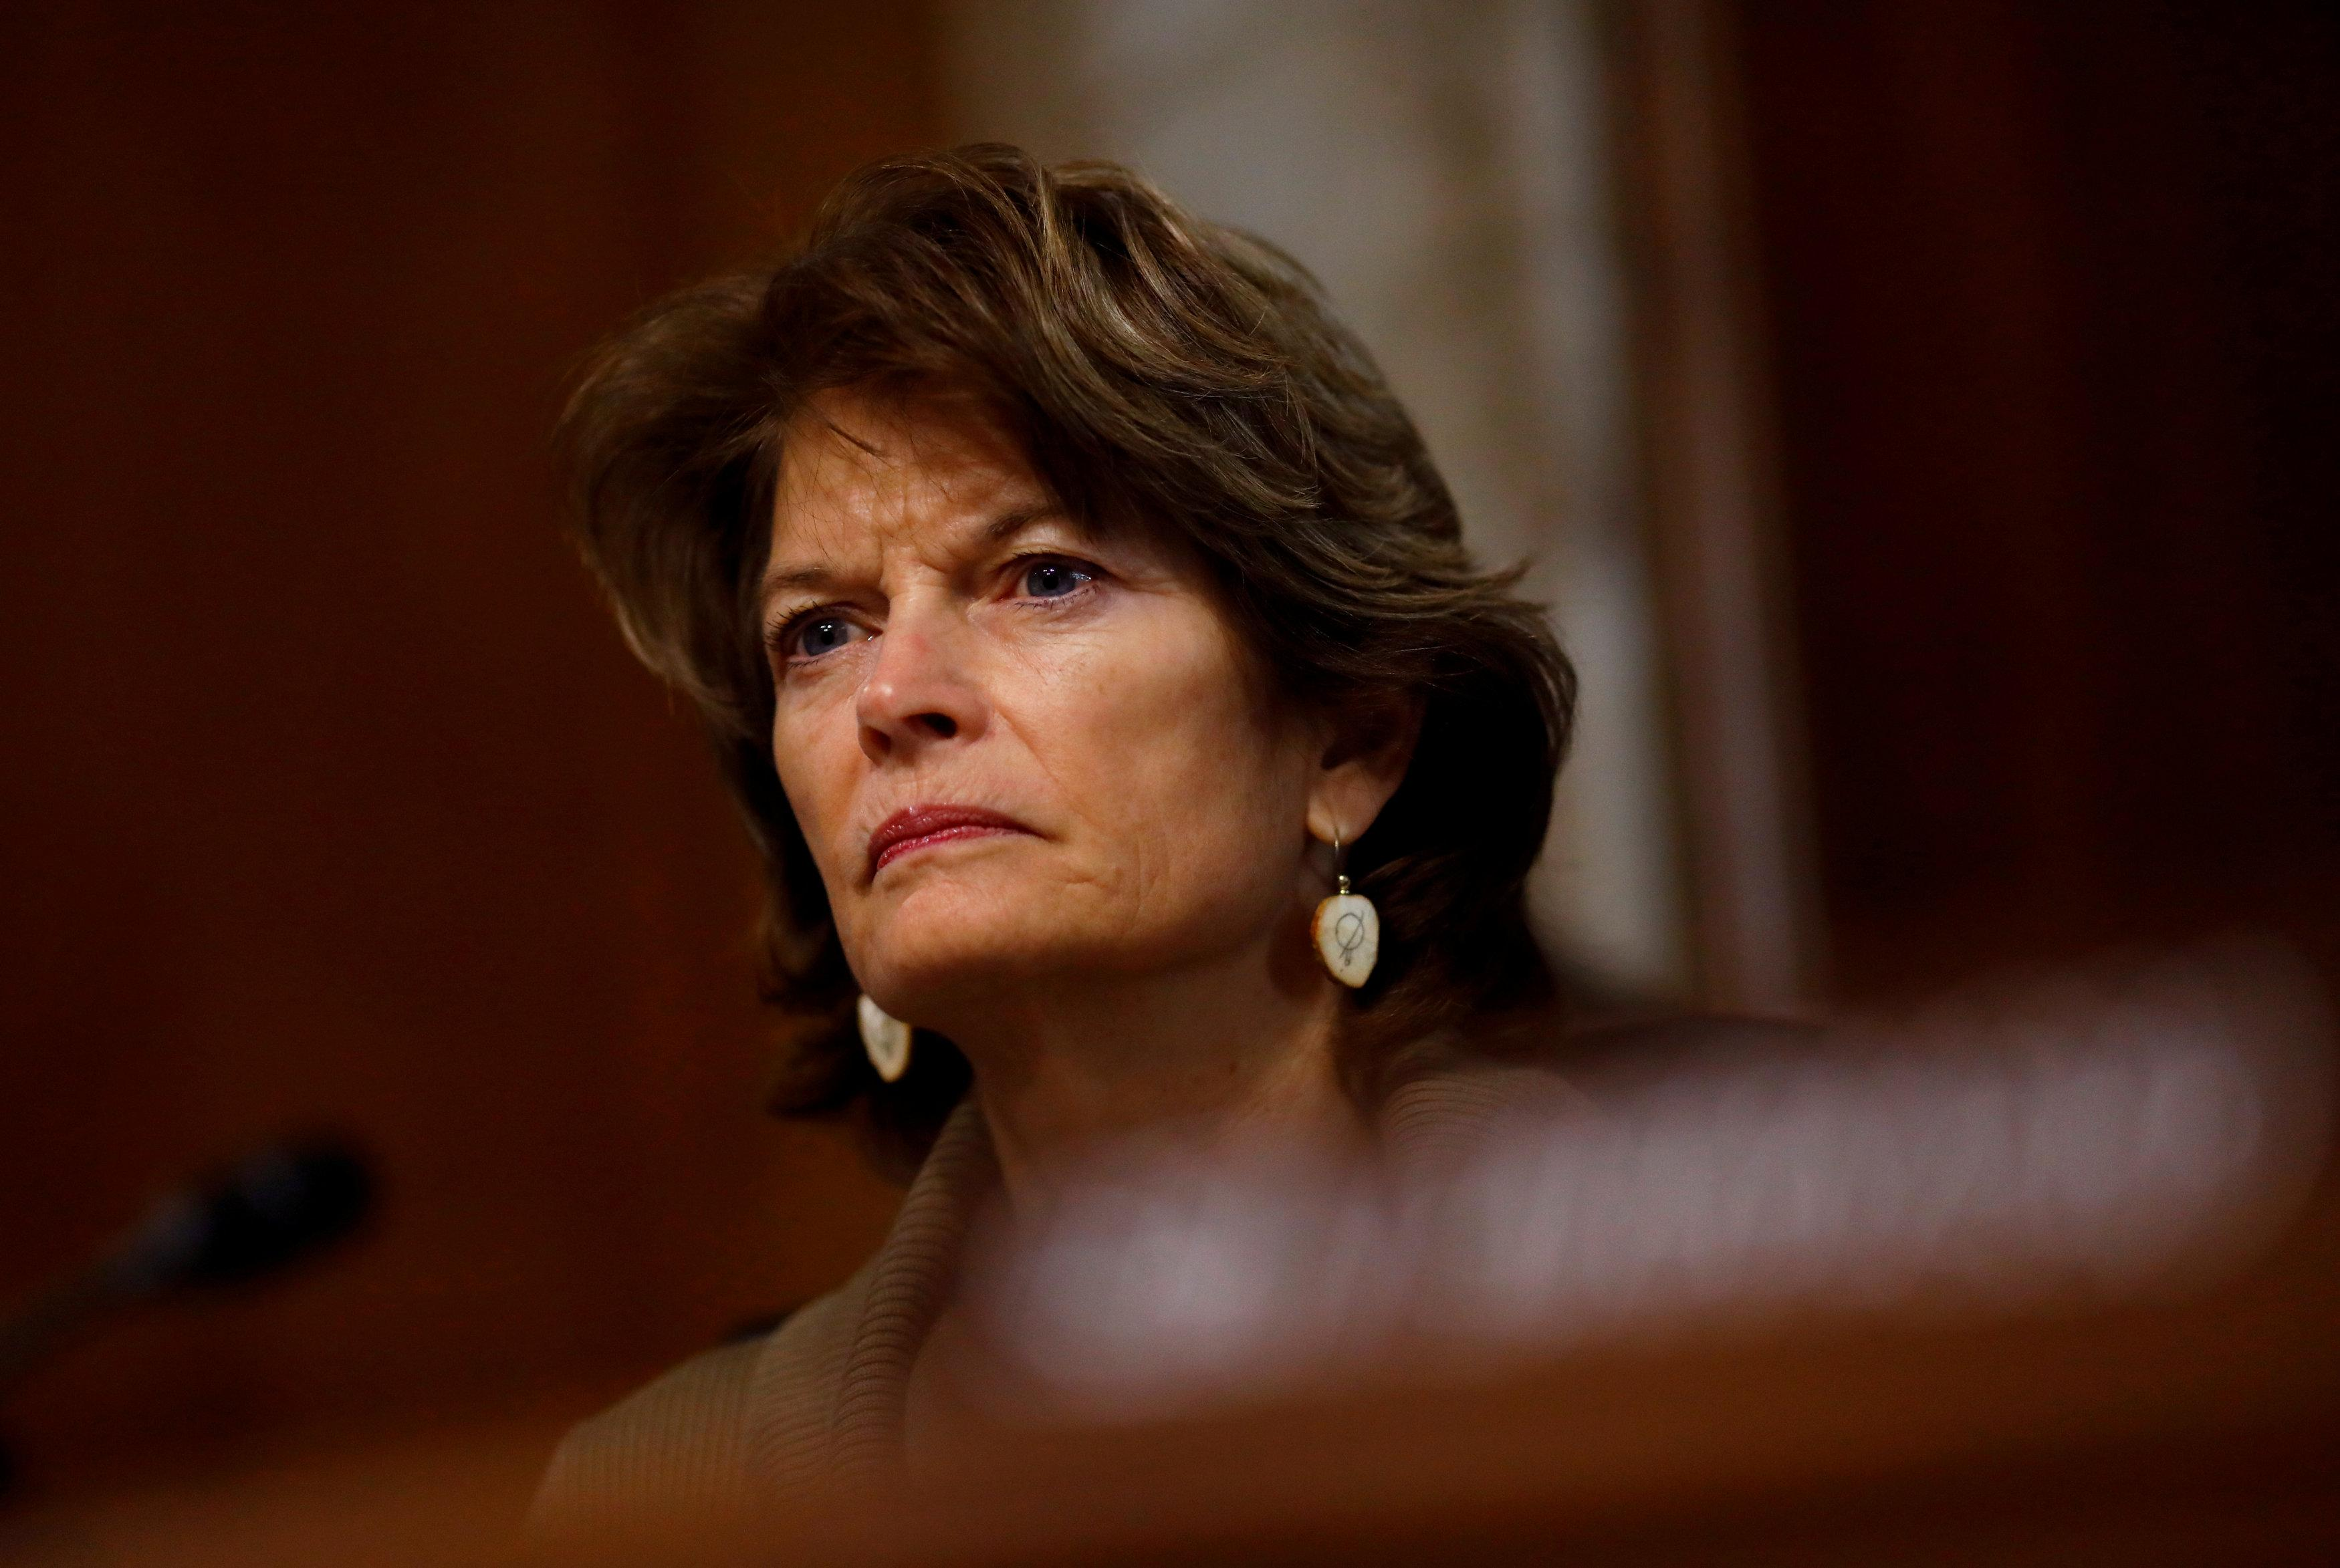 Chairwoman Lisa Murkowski (R-AK) speaks during a hearing of the Senate Committee on Energy and Natural Resources on Capitol Hill in Washington, U.S. March 13, 2018. Eric Thayer